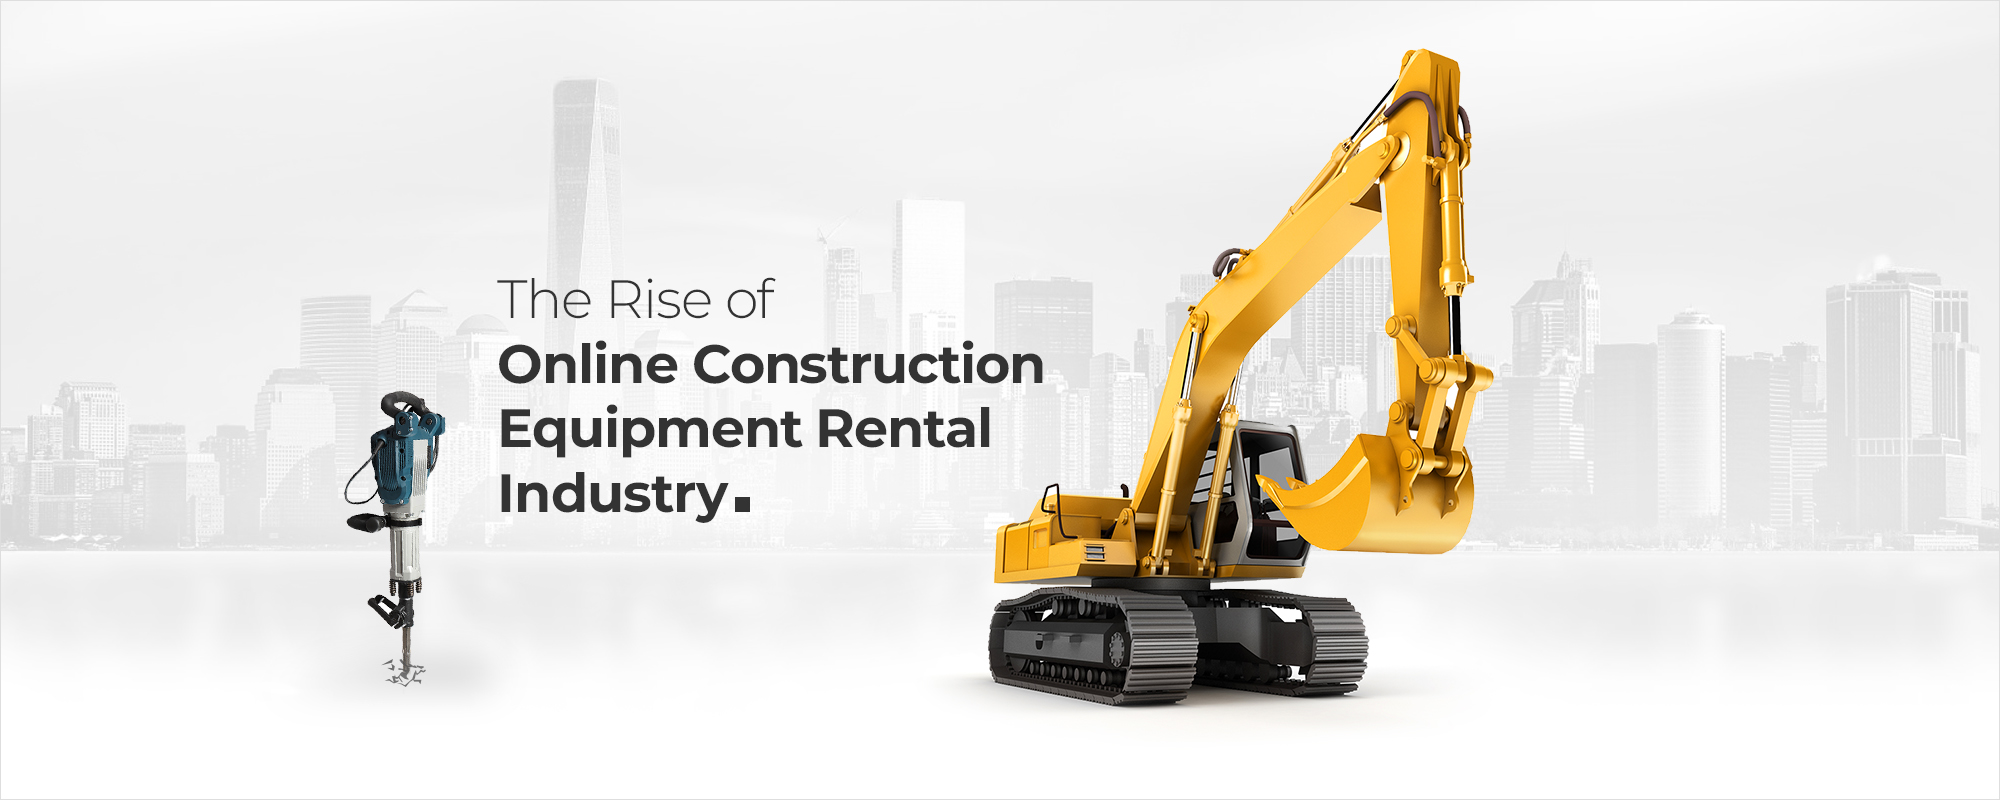 Online Heavy Equipment Rental Marketplace Business Model, Recent Innovations & Key Differentiators